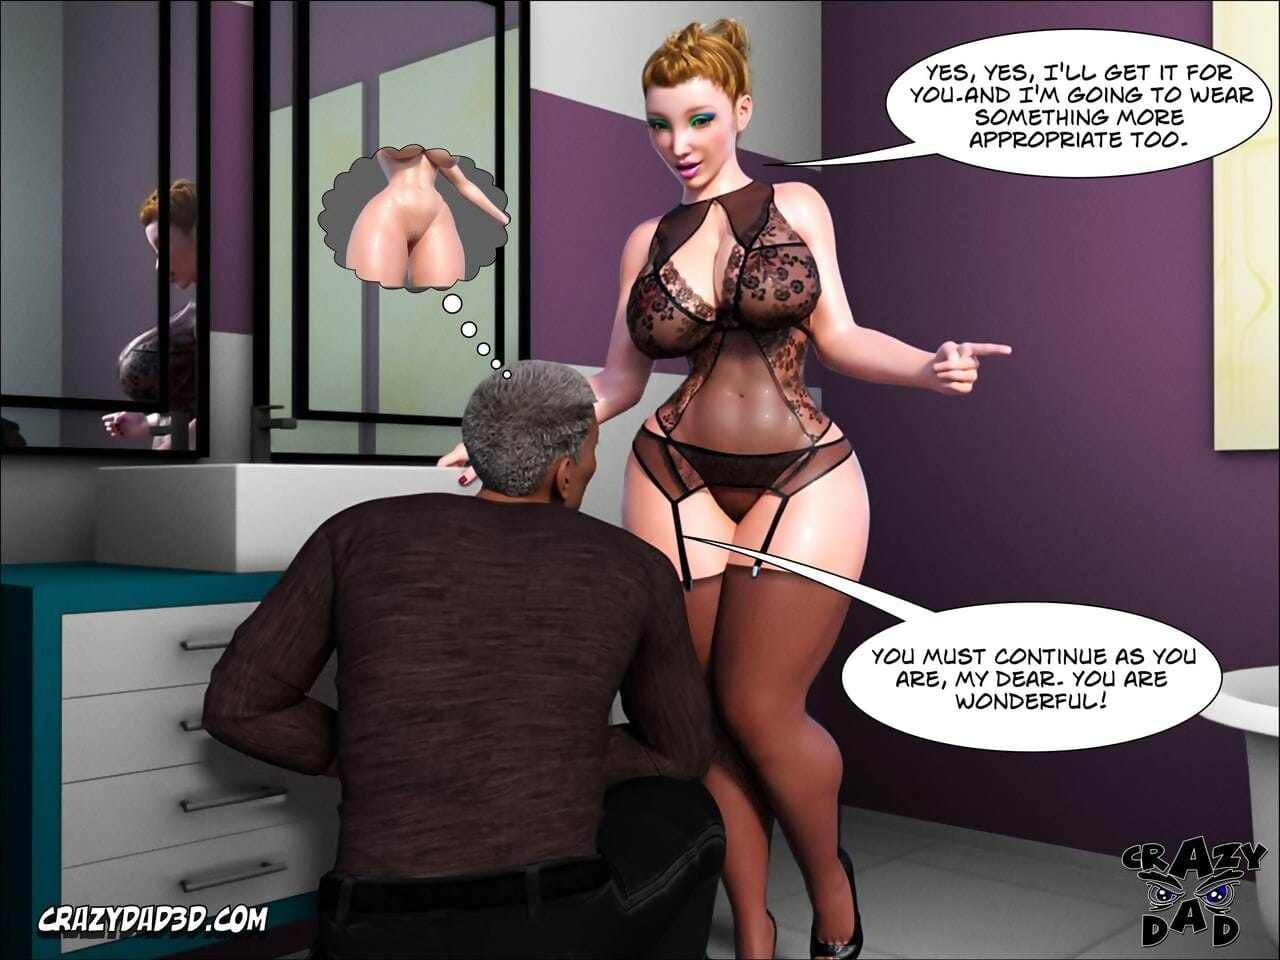 CrazyDad3d Father-in-Law at Home 1 - part 3